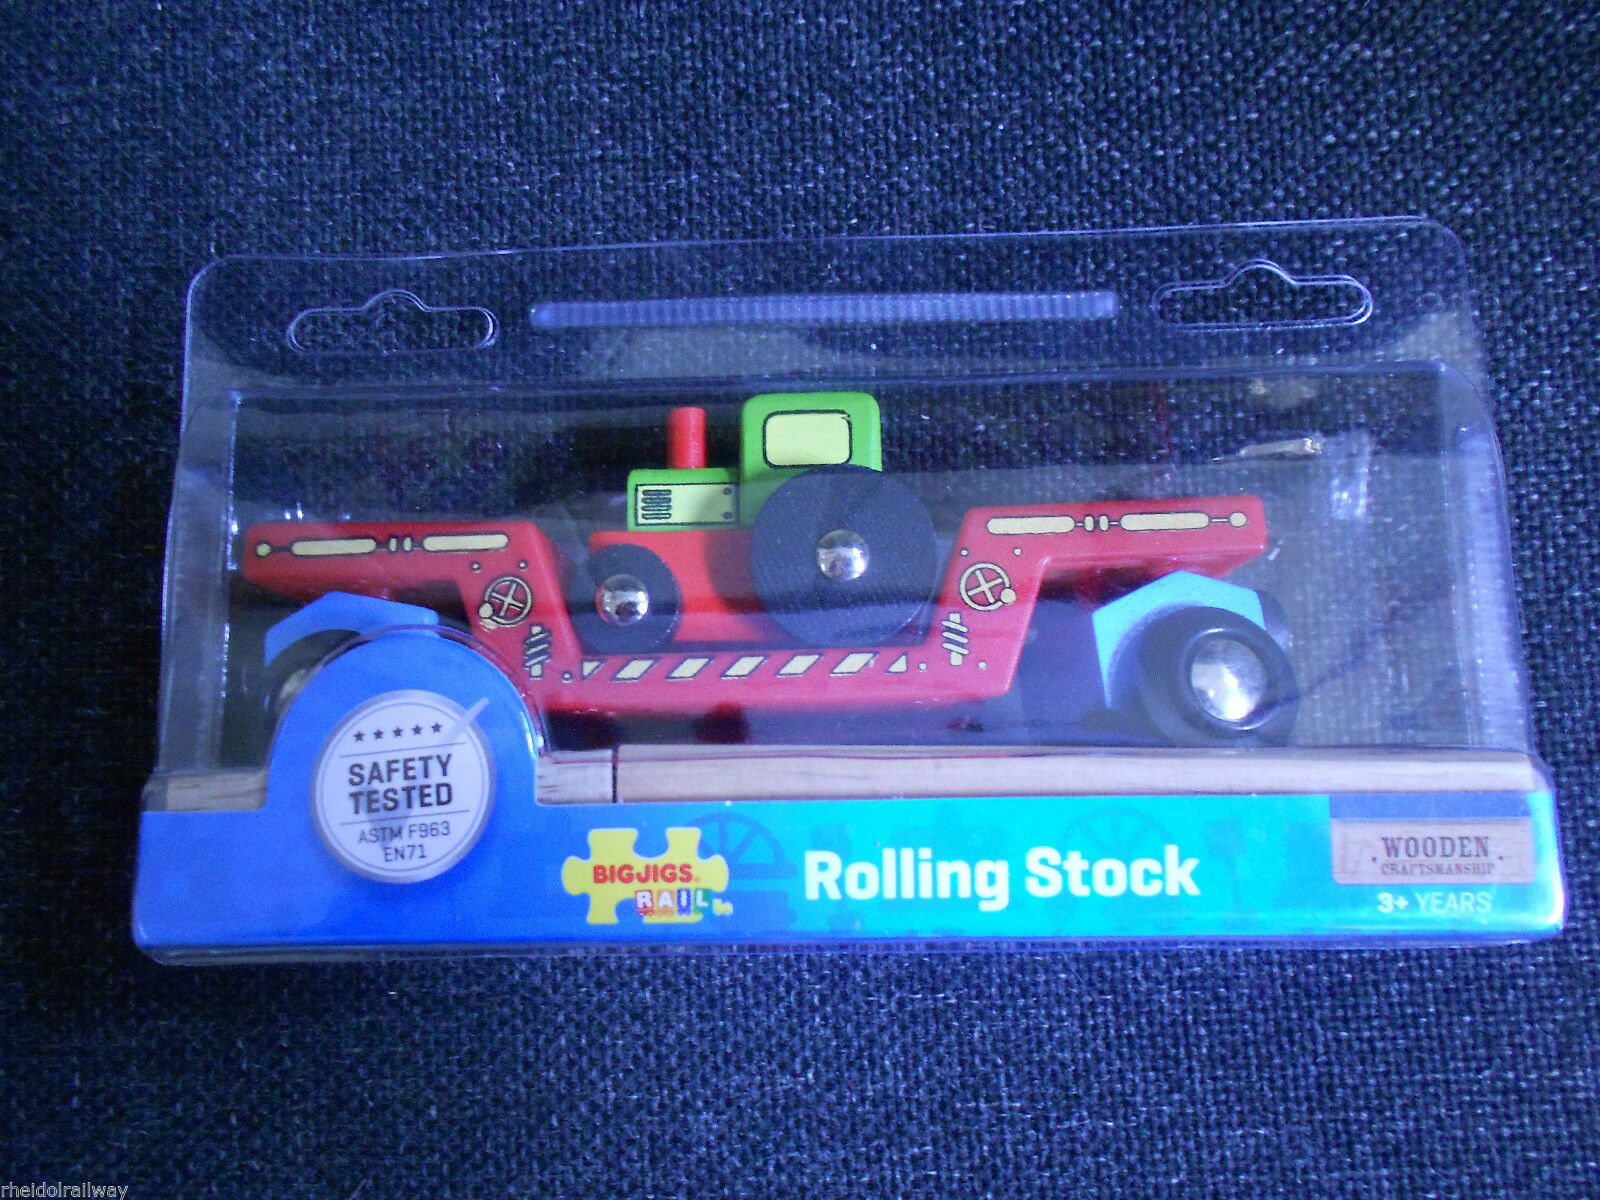 Wooden railway, BigJigs Tractor Low Loader fits Brio